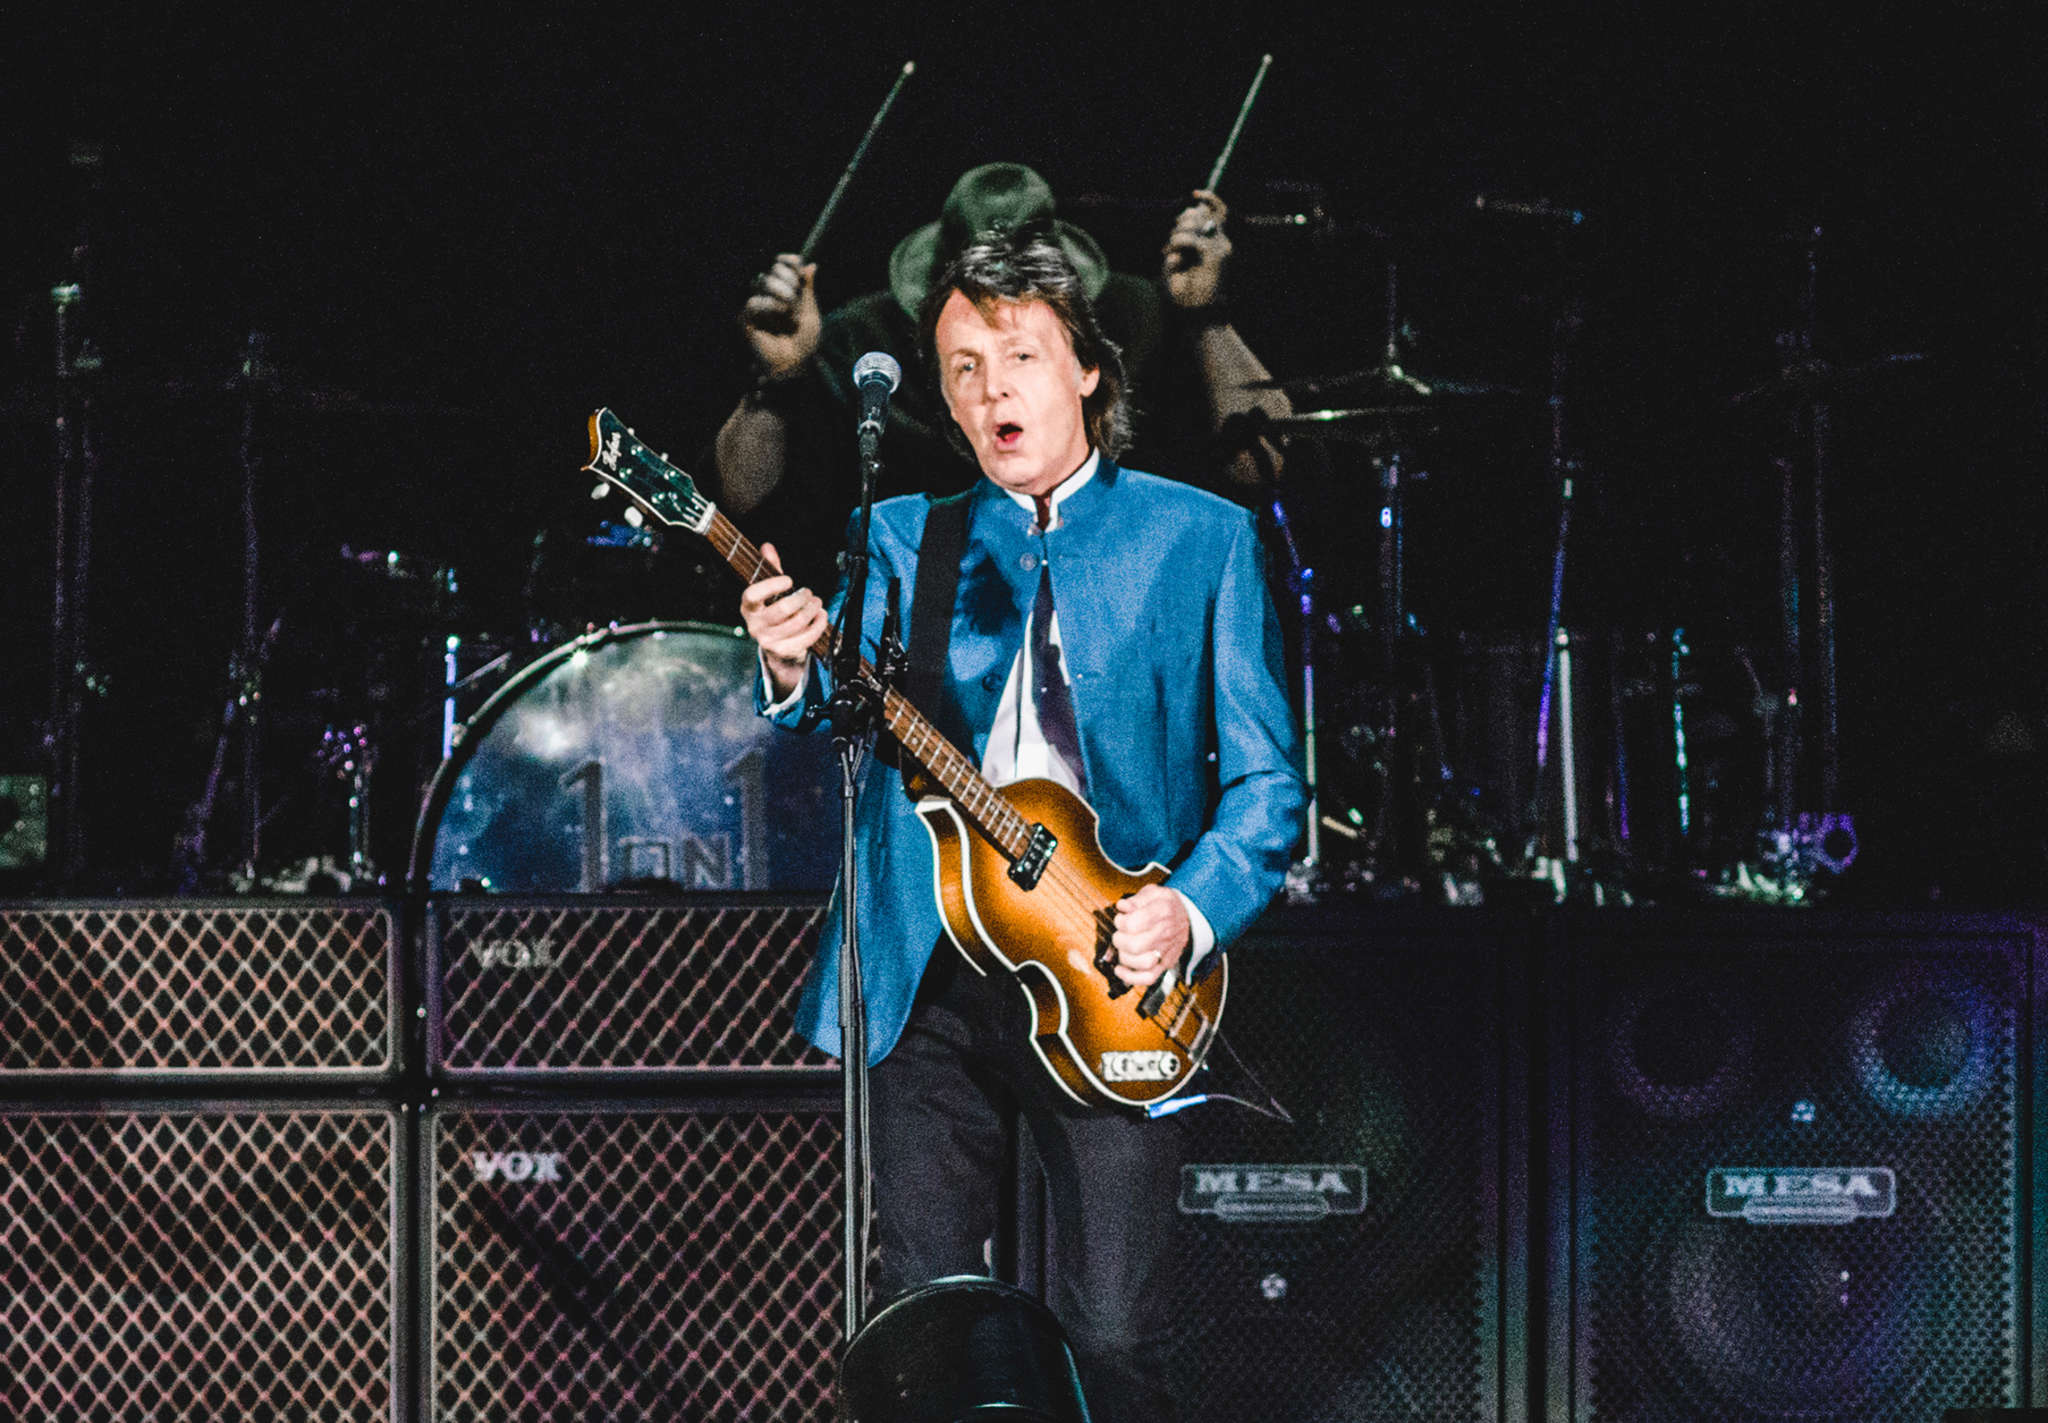 Paul McCartney and his four-piece band treated a sold-out Citizens Bank Park crowd Tuesday night to a generous, nearly three-hour concert that was sure to please Beatles fans. See music critic Dan DeLuca´s review at Philly.com and in Thursday´s Inquirer.